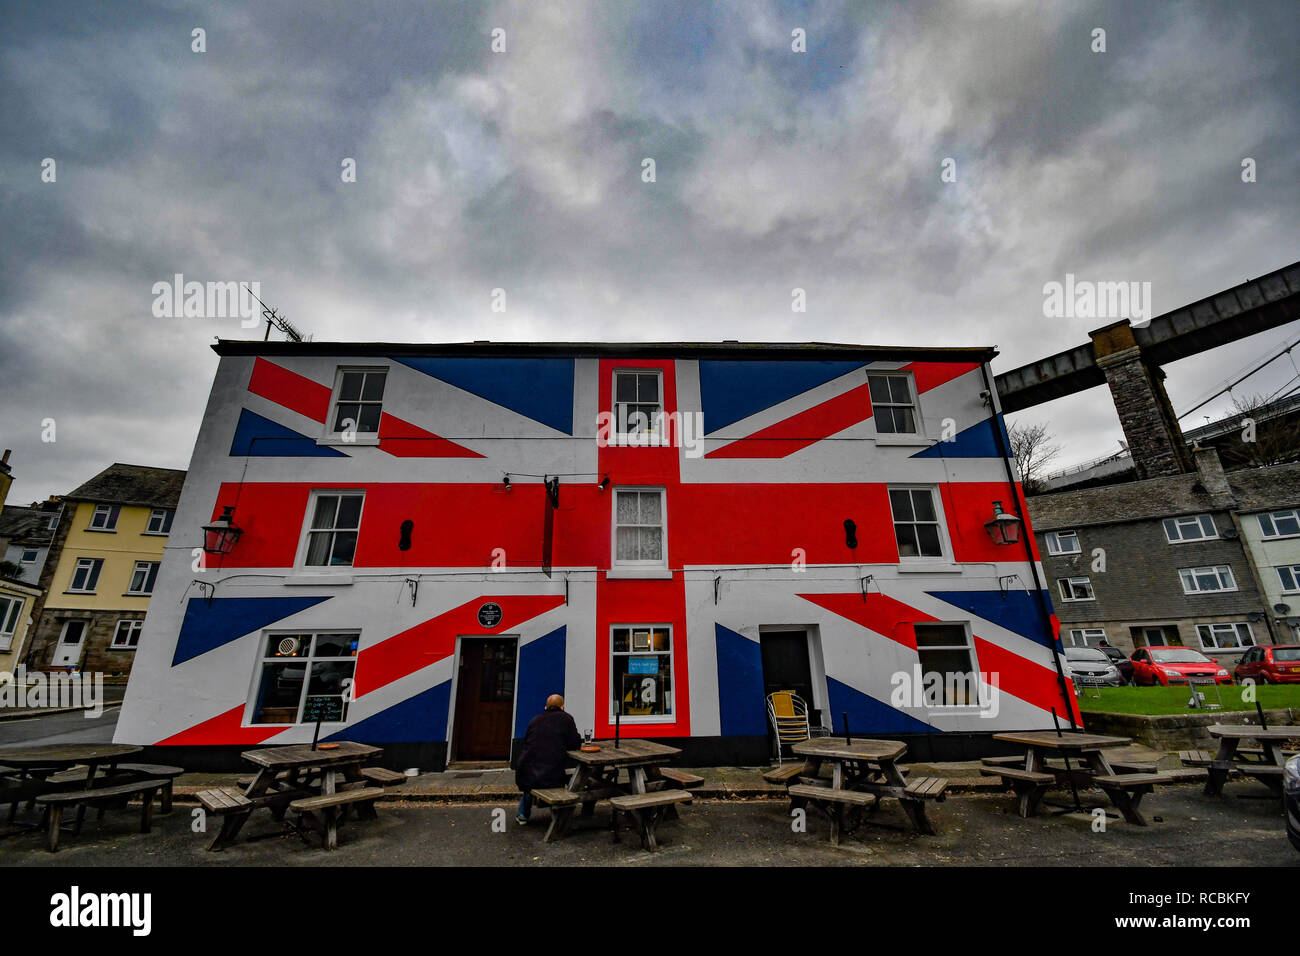 Saltash, Cornwall, UK. 15th Jan 2019. UK Weather. Clouds loomed overhead the Union Inn on the banks of the Tamar in Cornwall this afternoon, ahead of this evenings Brexit vote. Credit: Simon Maycock/Alamy Live News Stock Photo